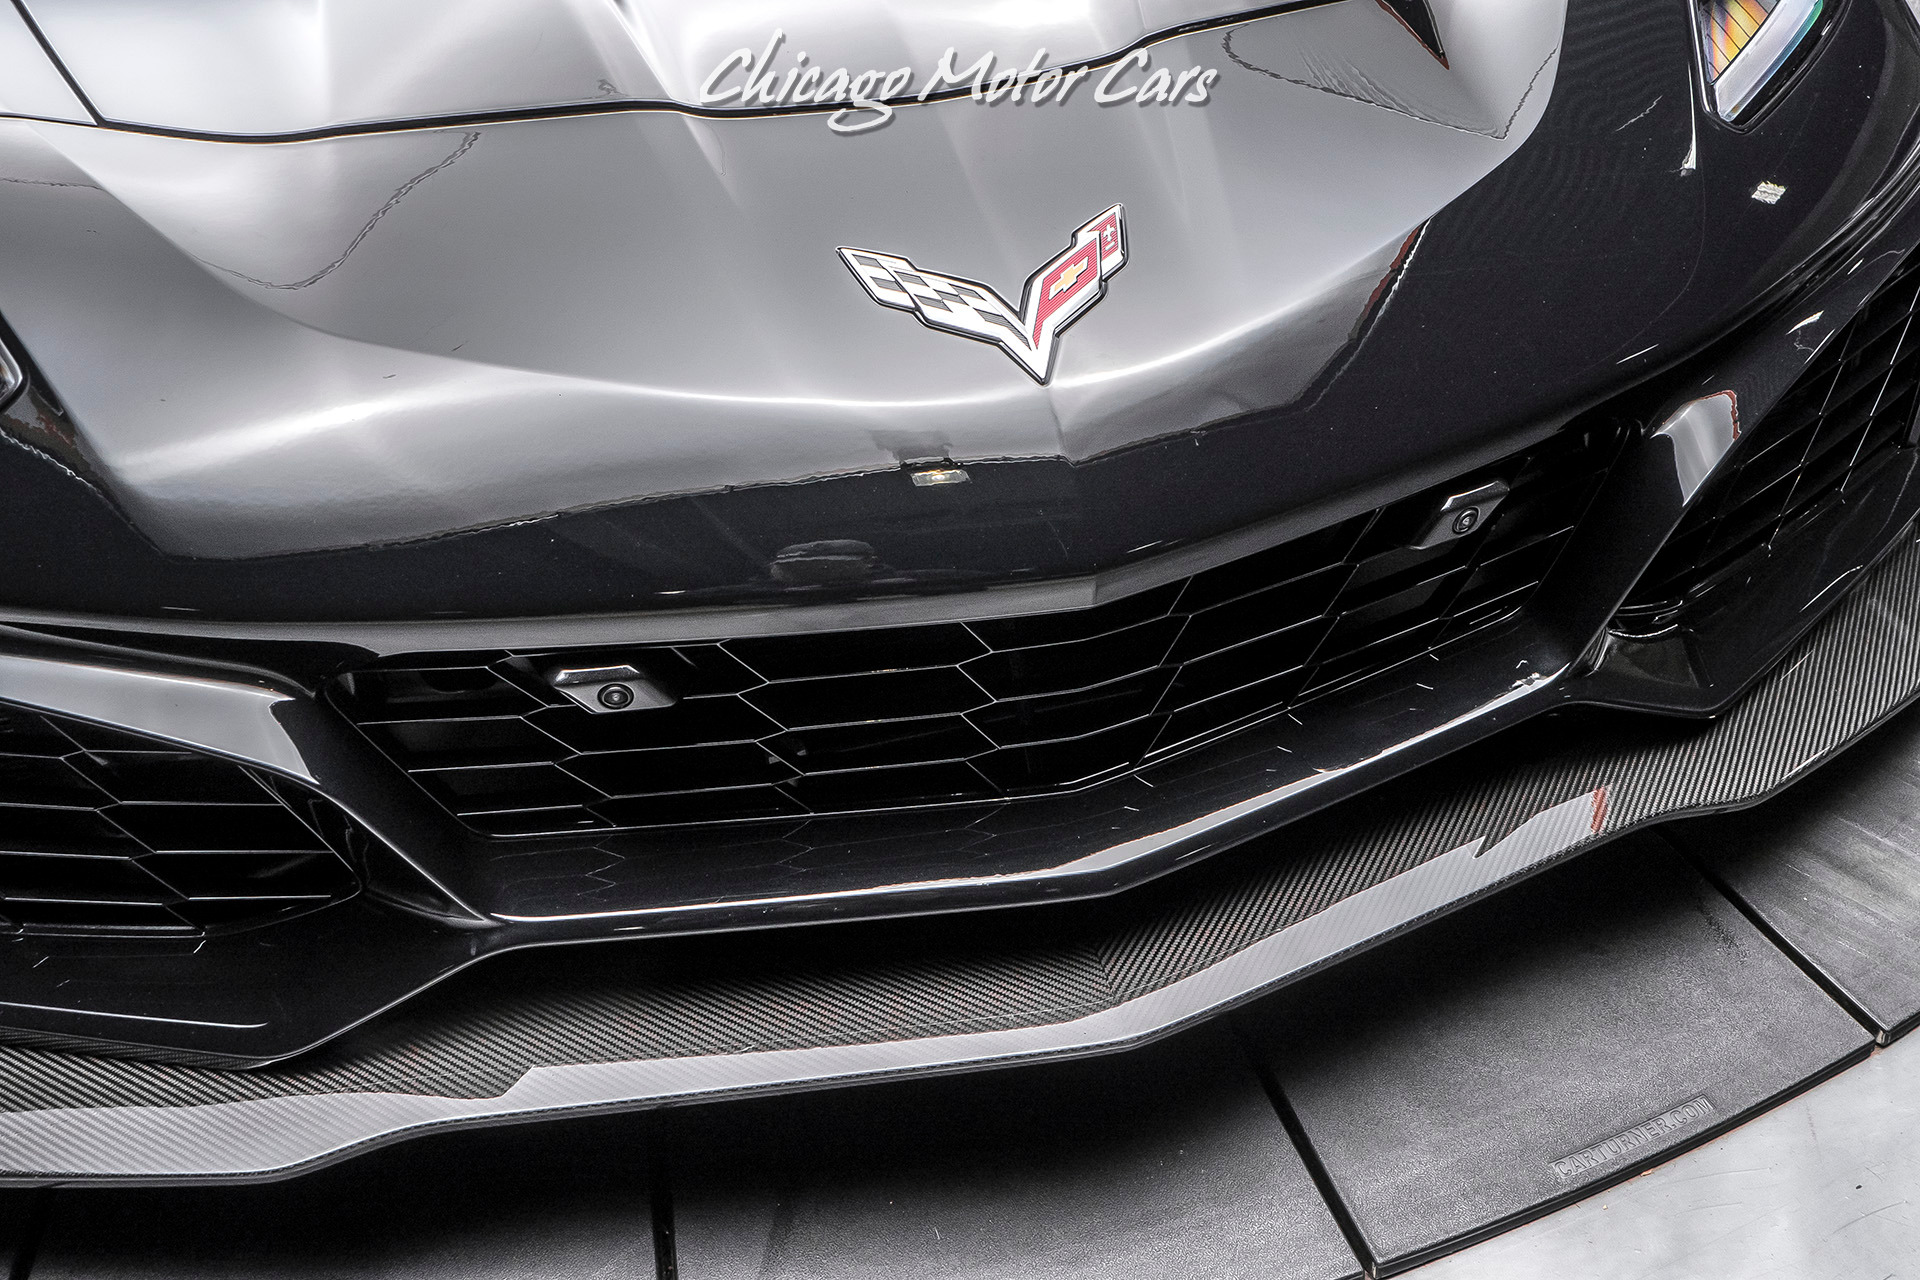 Used-2019-Chevrolet-Corvette-ZR1-3ZR-Coupe-ZTK-PKG-AKRAPOVIC-EXHAUST-STRASSE-WHEELS